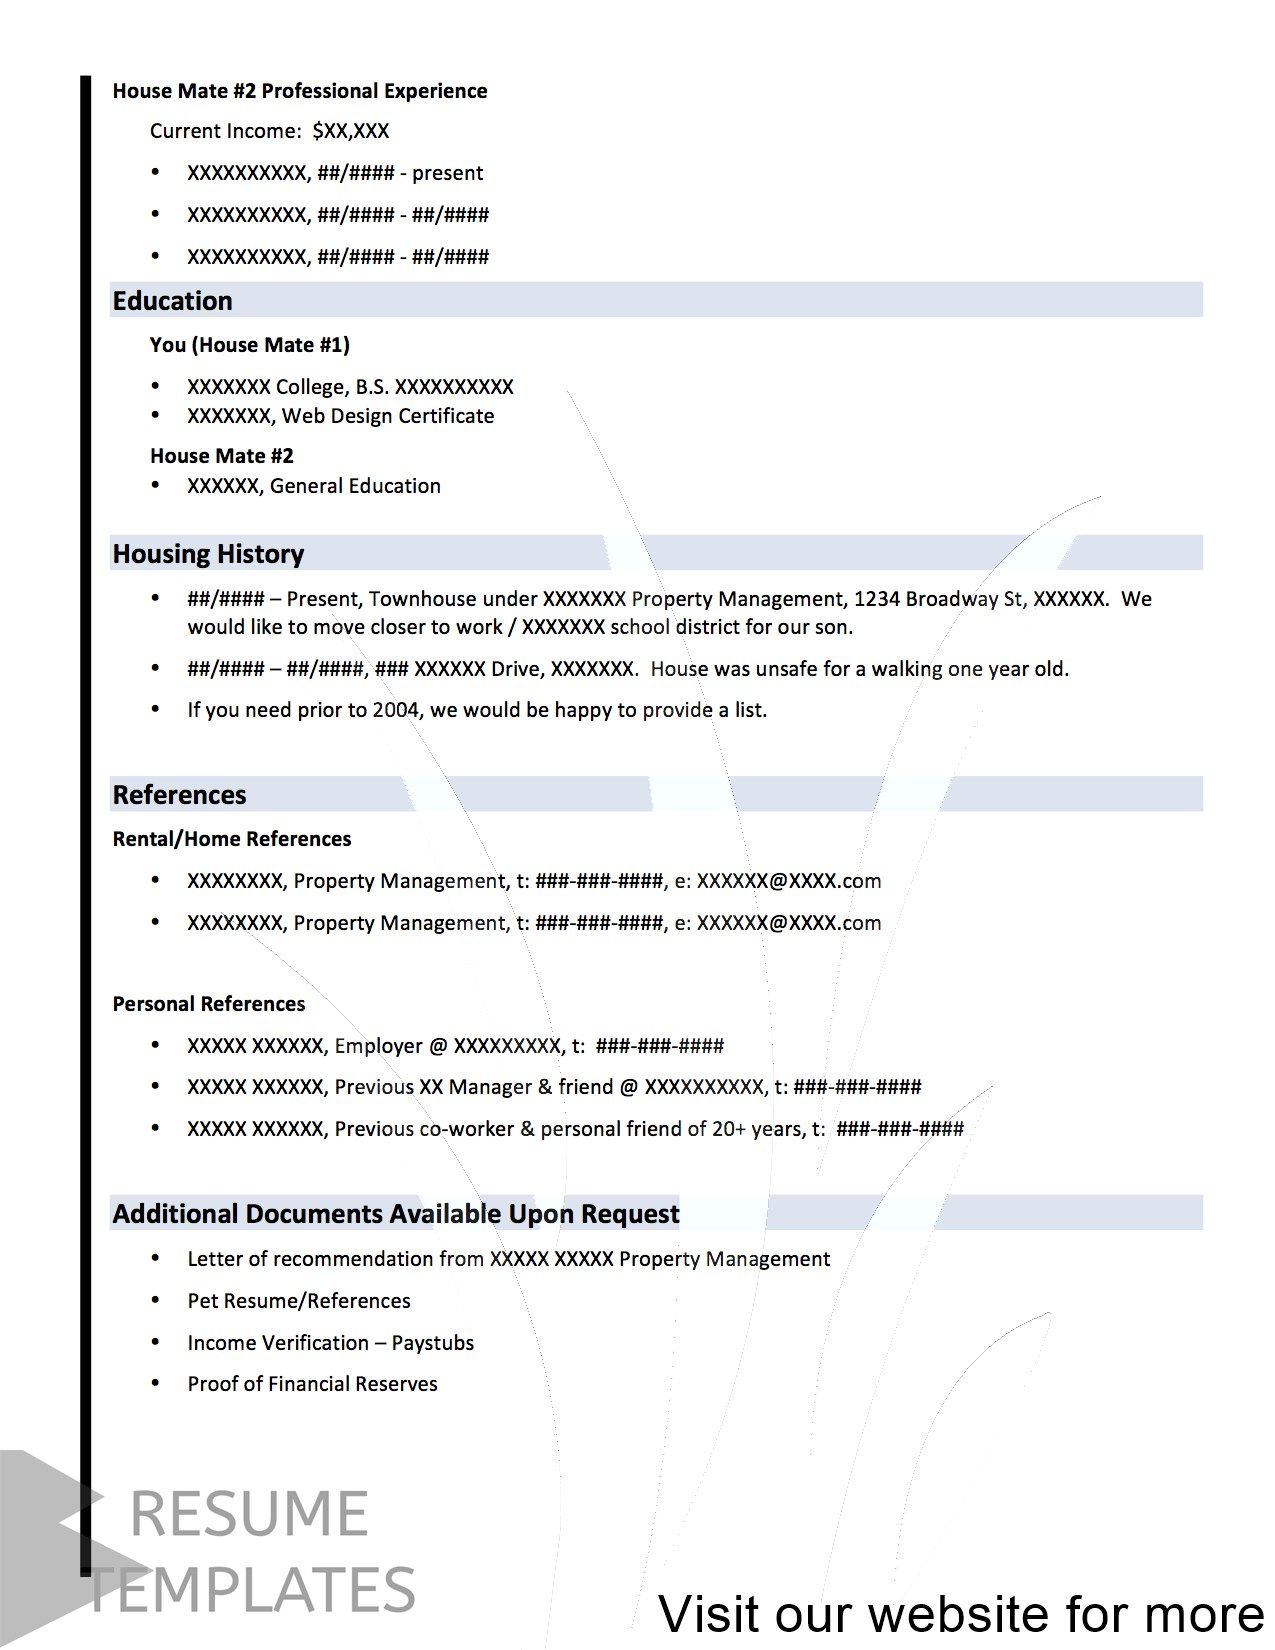 cv template word document Free in 2020 Cv template word